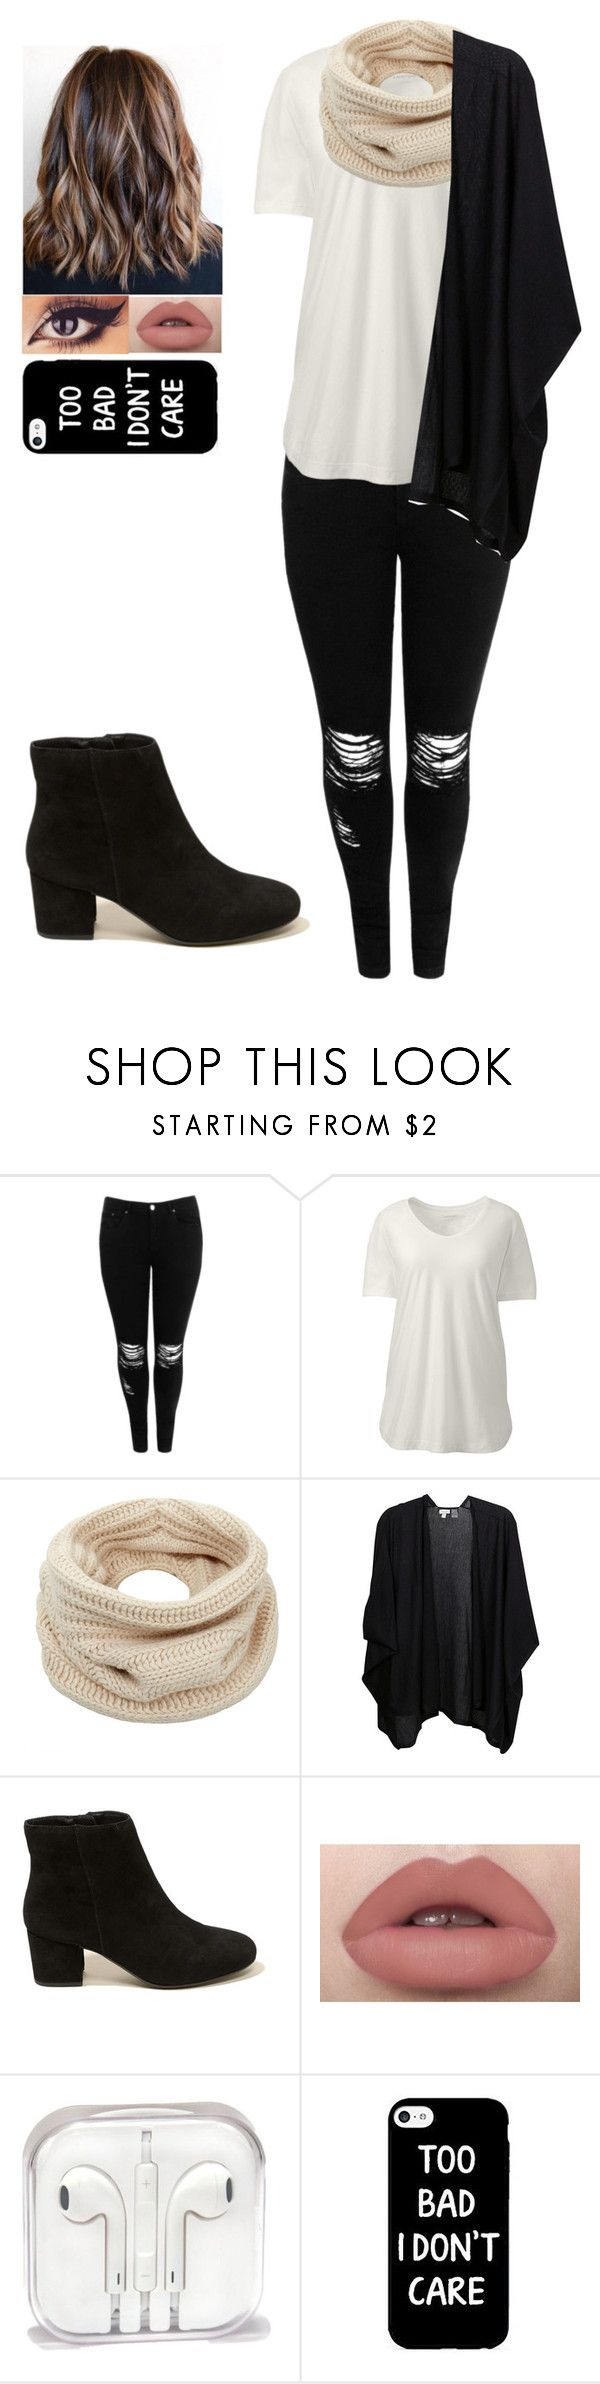 """""""Plus size winter outfit"""" by love-5secondsofsummer ❤ liked on Polyvore featuring Boohoo, Lands' End, Helmut Lang, Kinross, Hollister Co. and plus size clothing"""